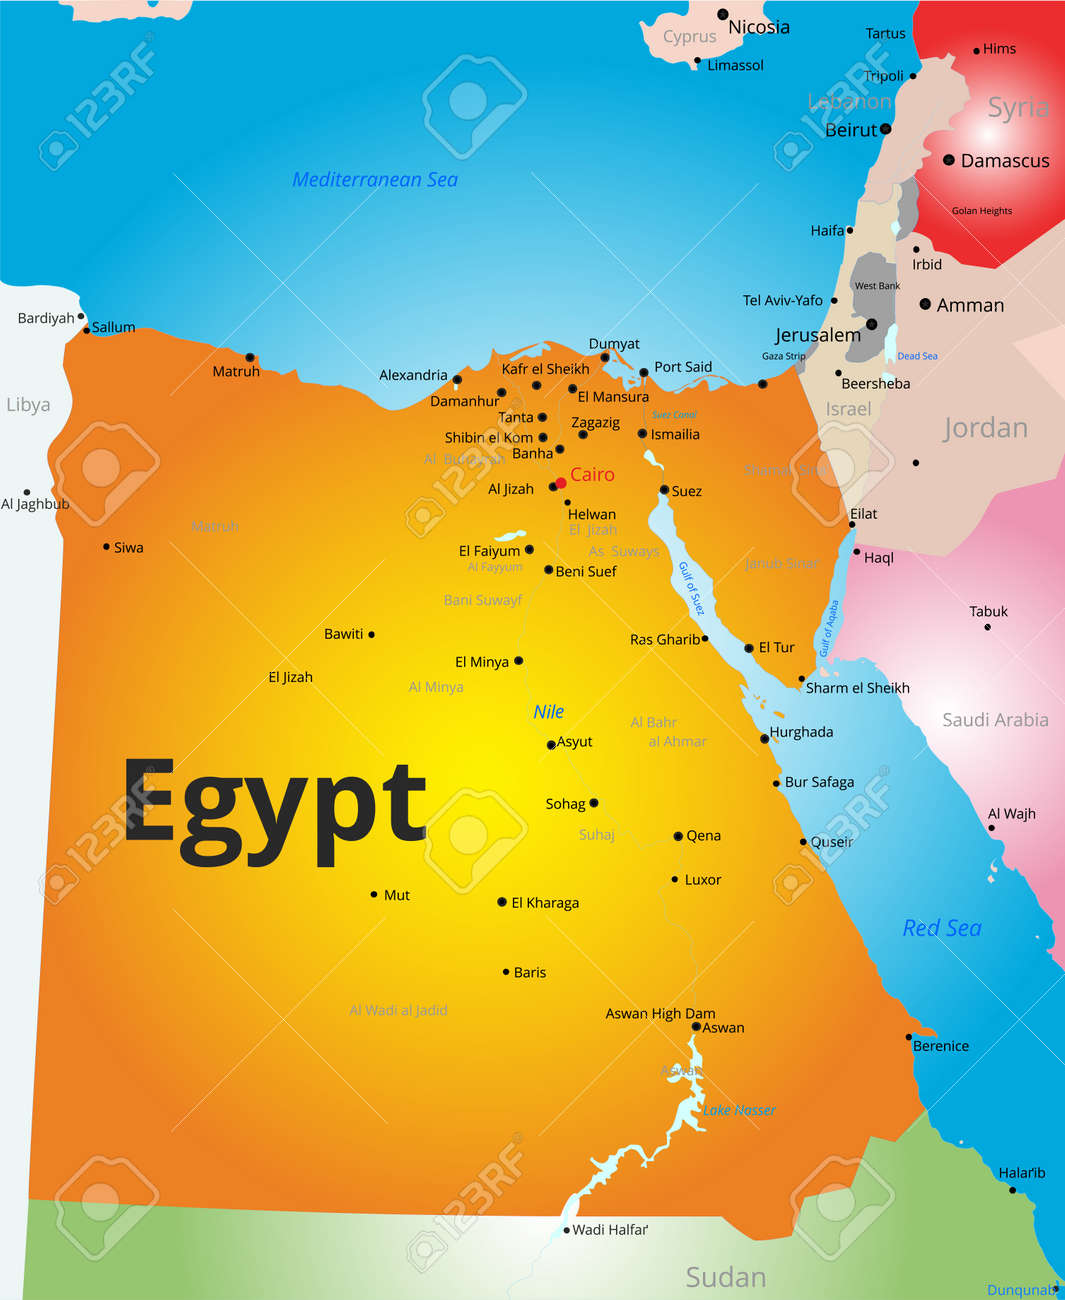 Karte ägypten.Stock Photo